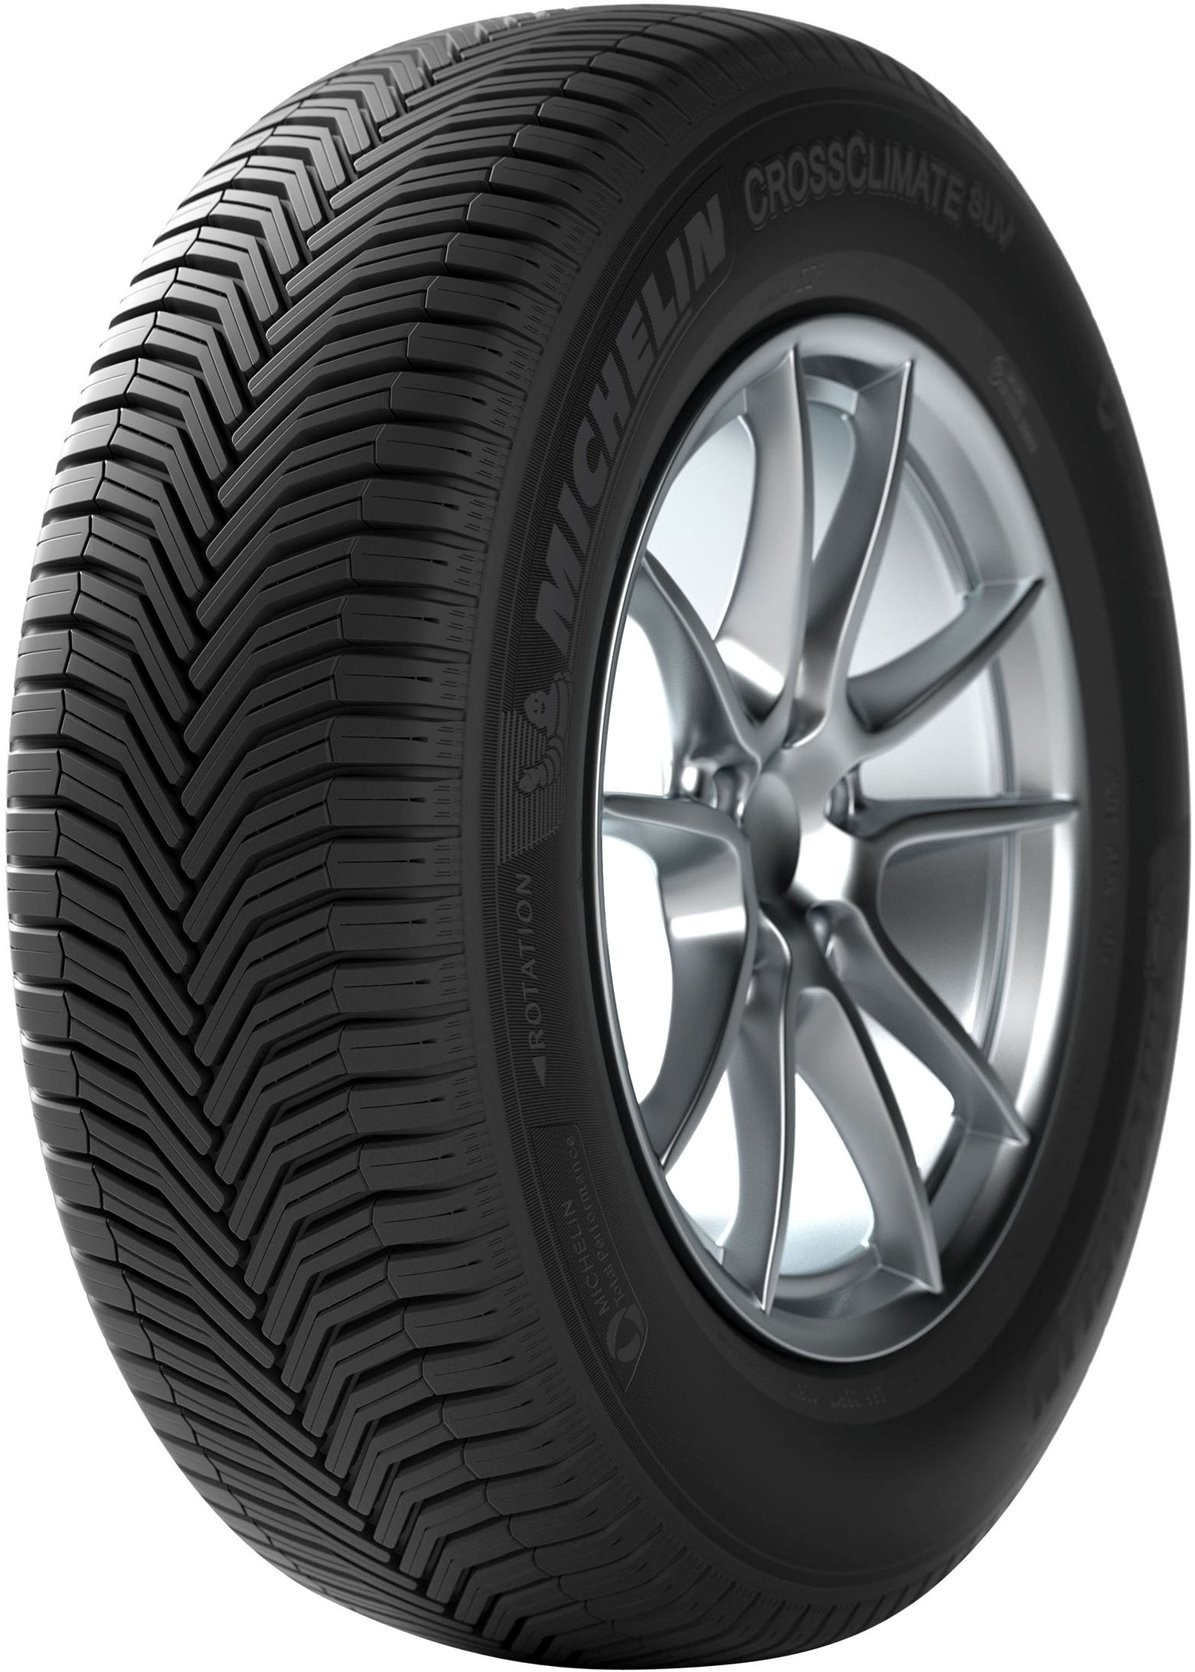 Michelin CrossClimate 225/65R17 106V